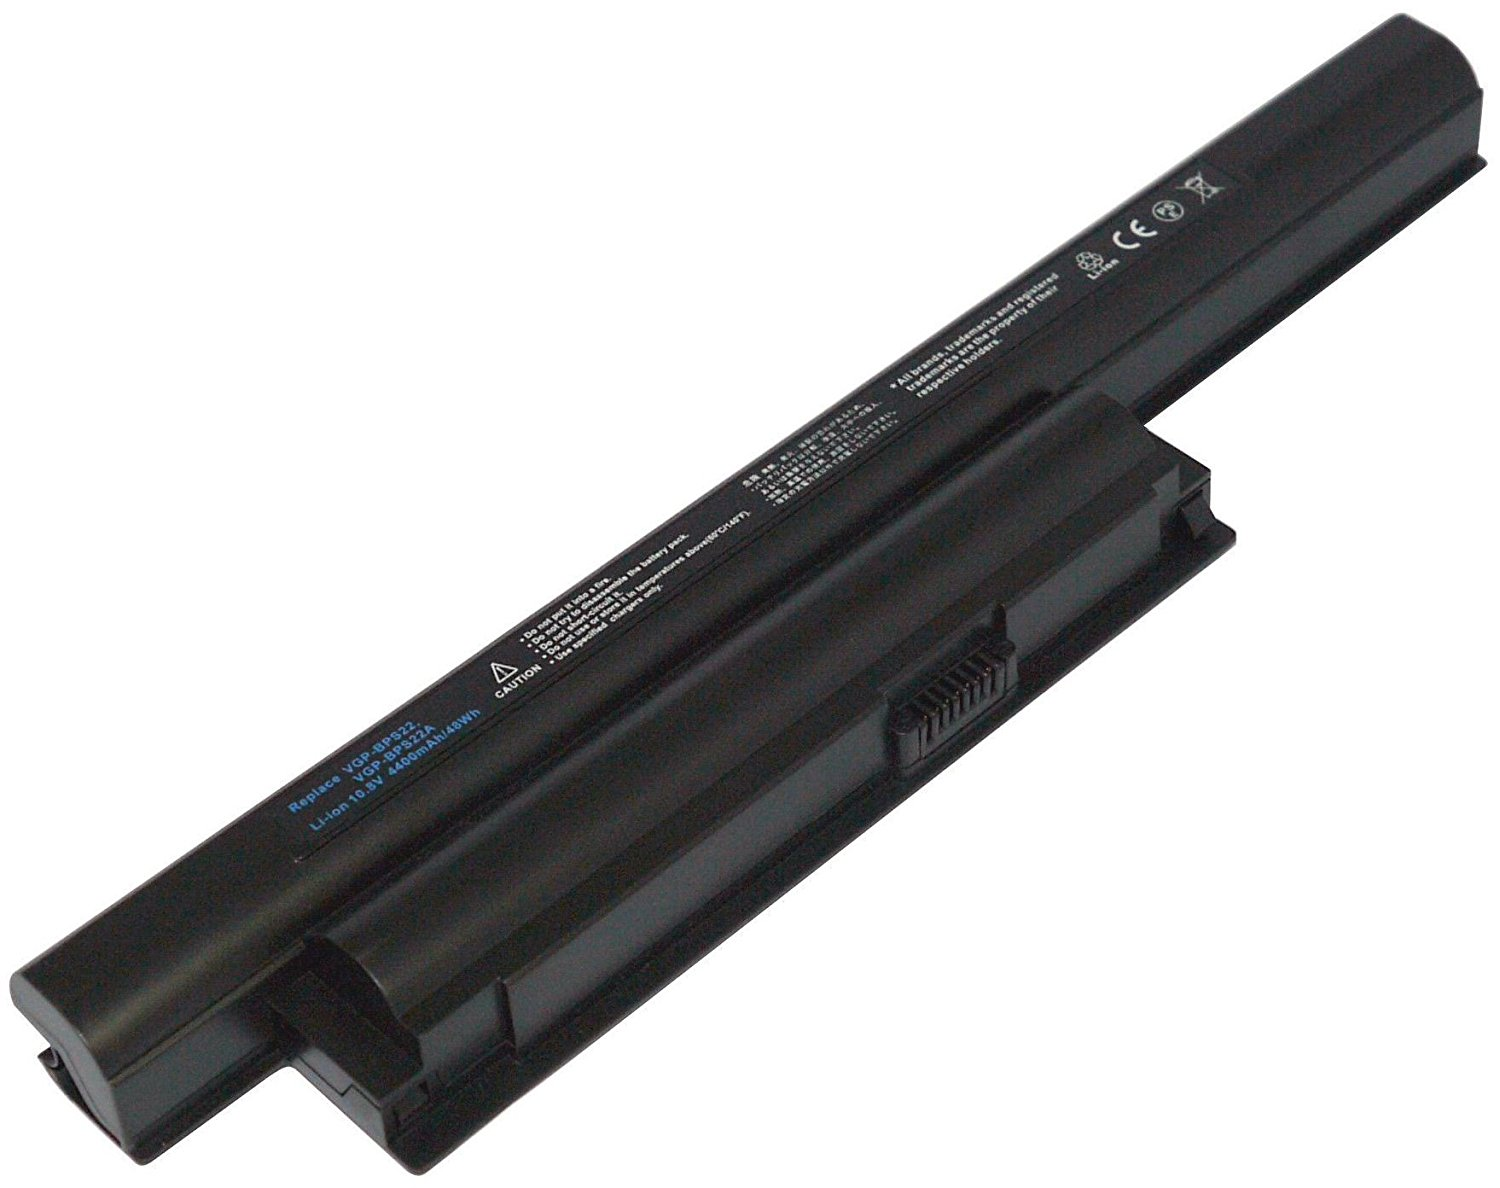 Buy 6 Cell Battery for SONY VAIO VGP-BPS22, VGP-BPS22A, VPC Series